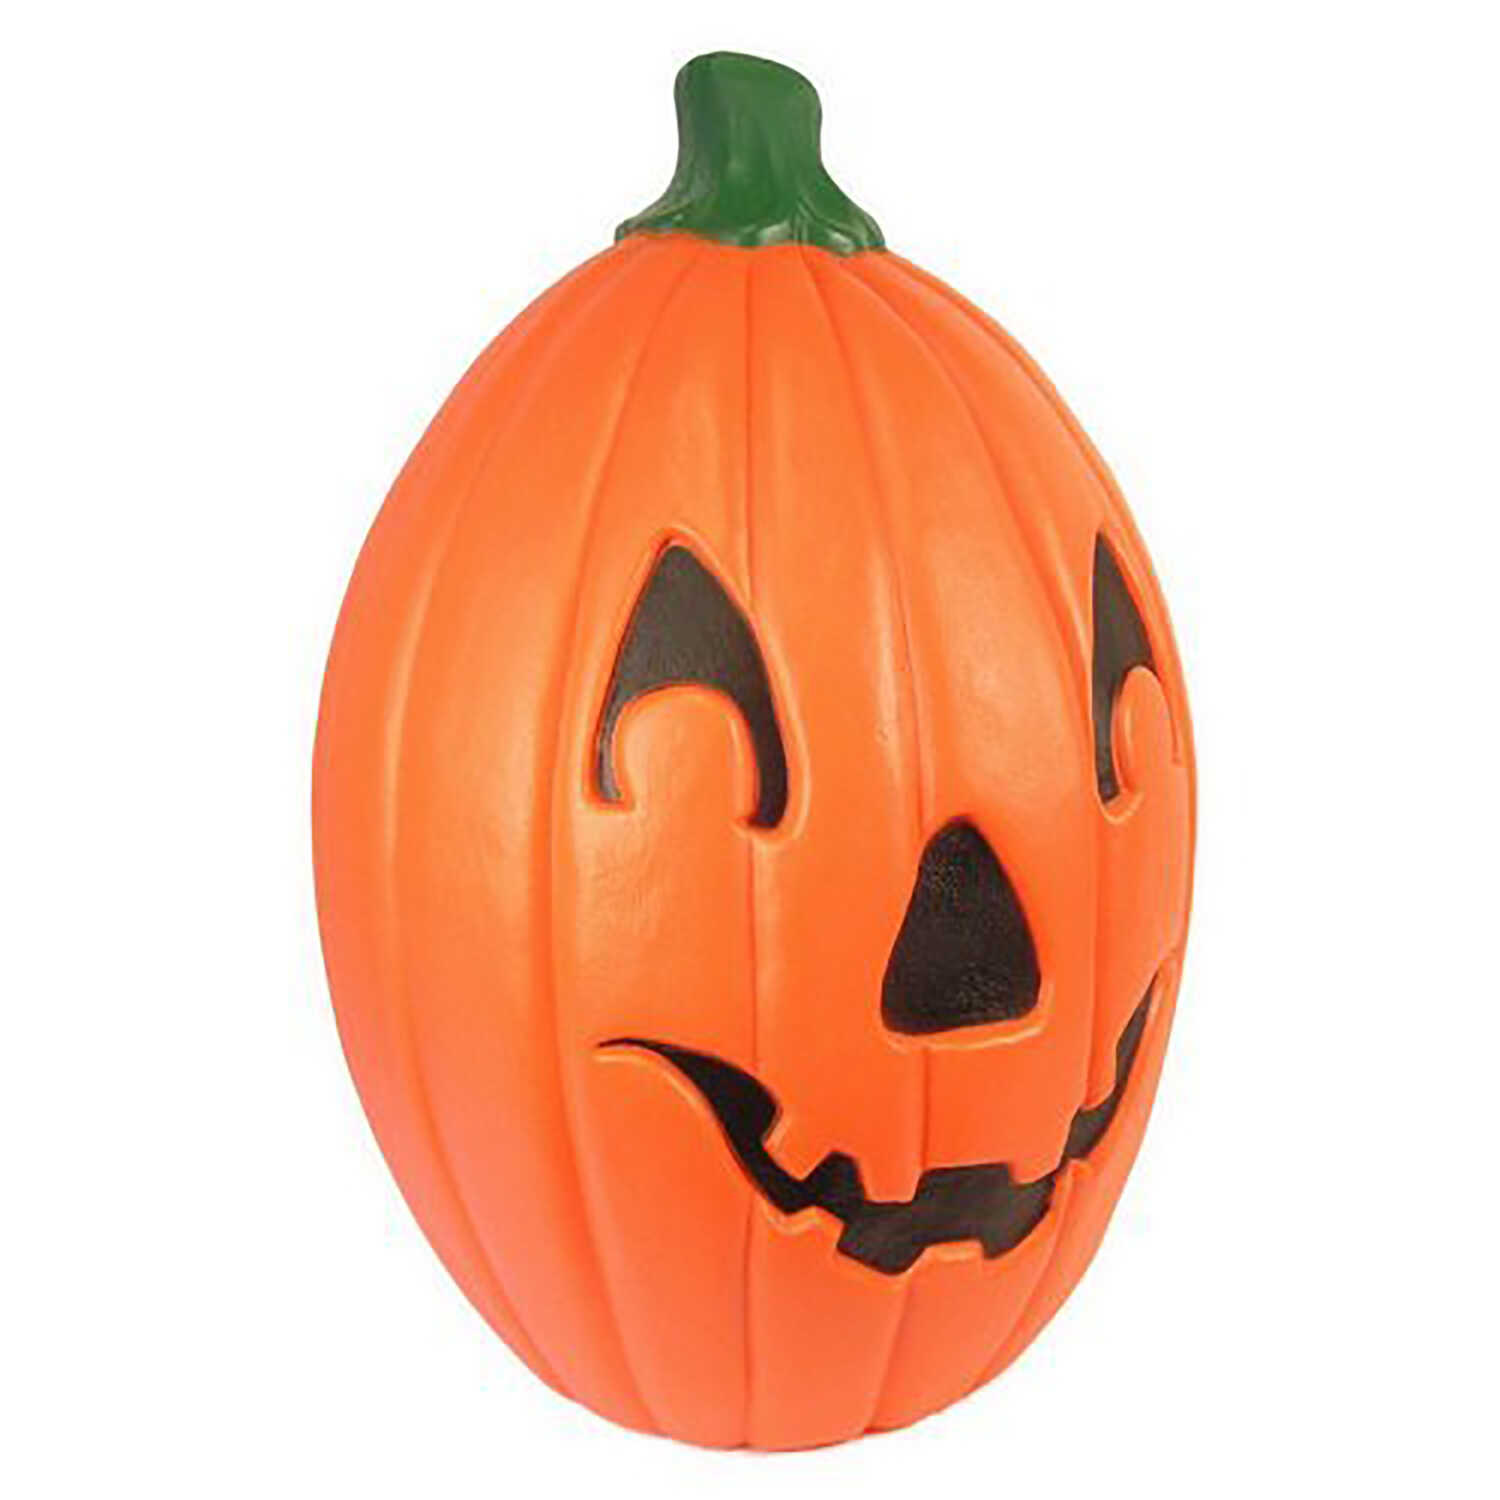 Union Products  Pumpkin Blow Mold  Lighted Halloween Decoration  22 in. H x 15.5 in. W x 15.5 in. L